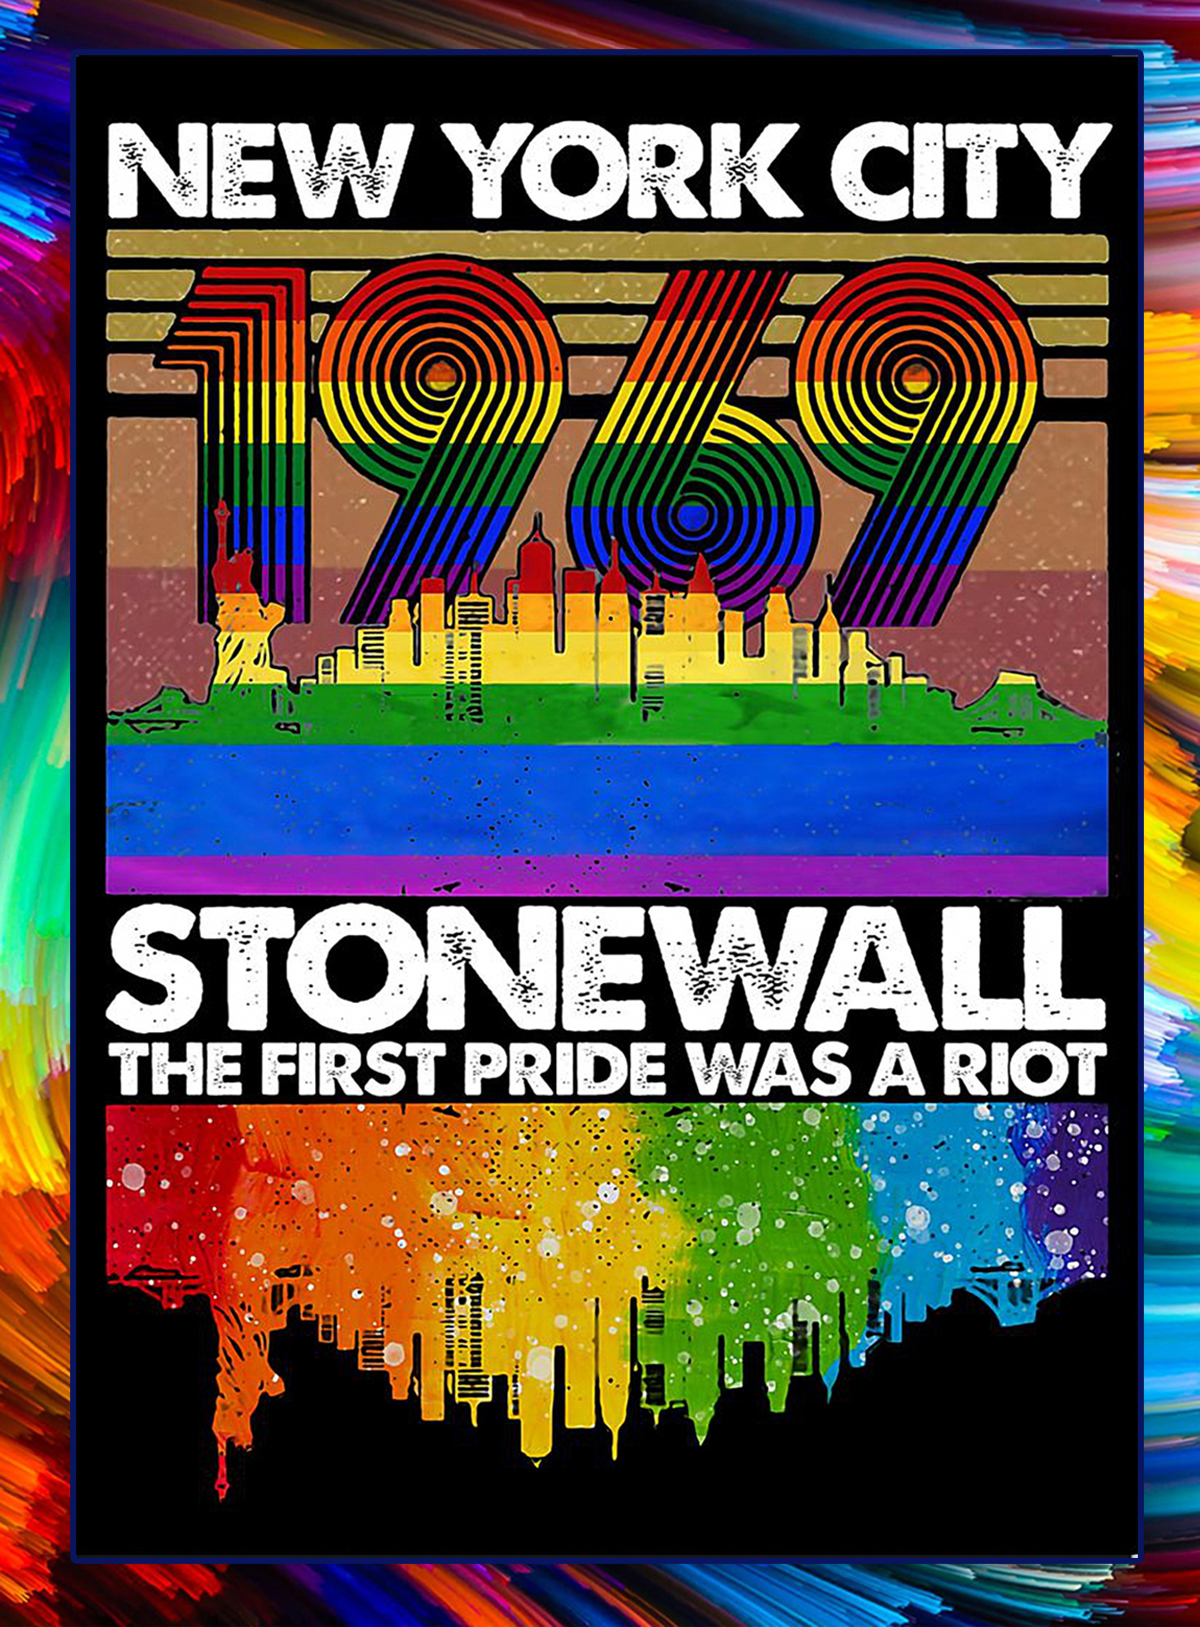 New york city 1969 stonewall riots poster - A1